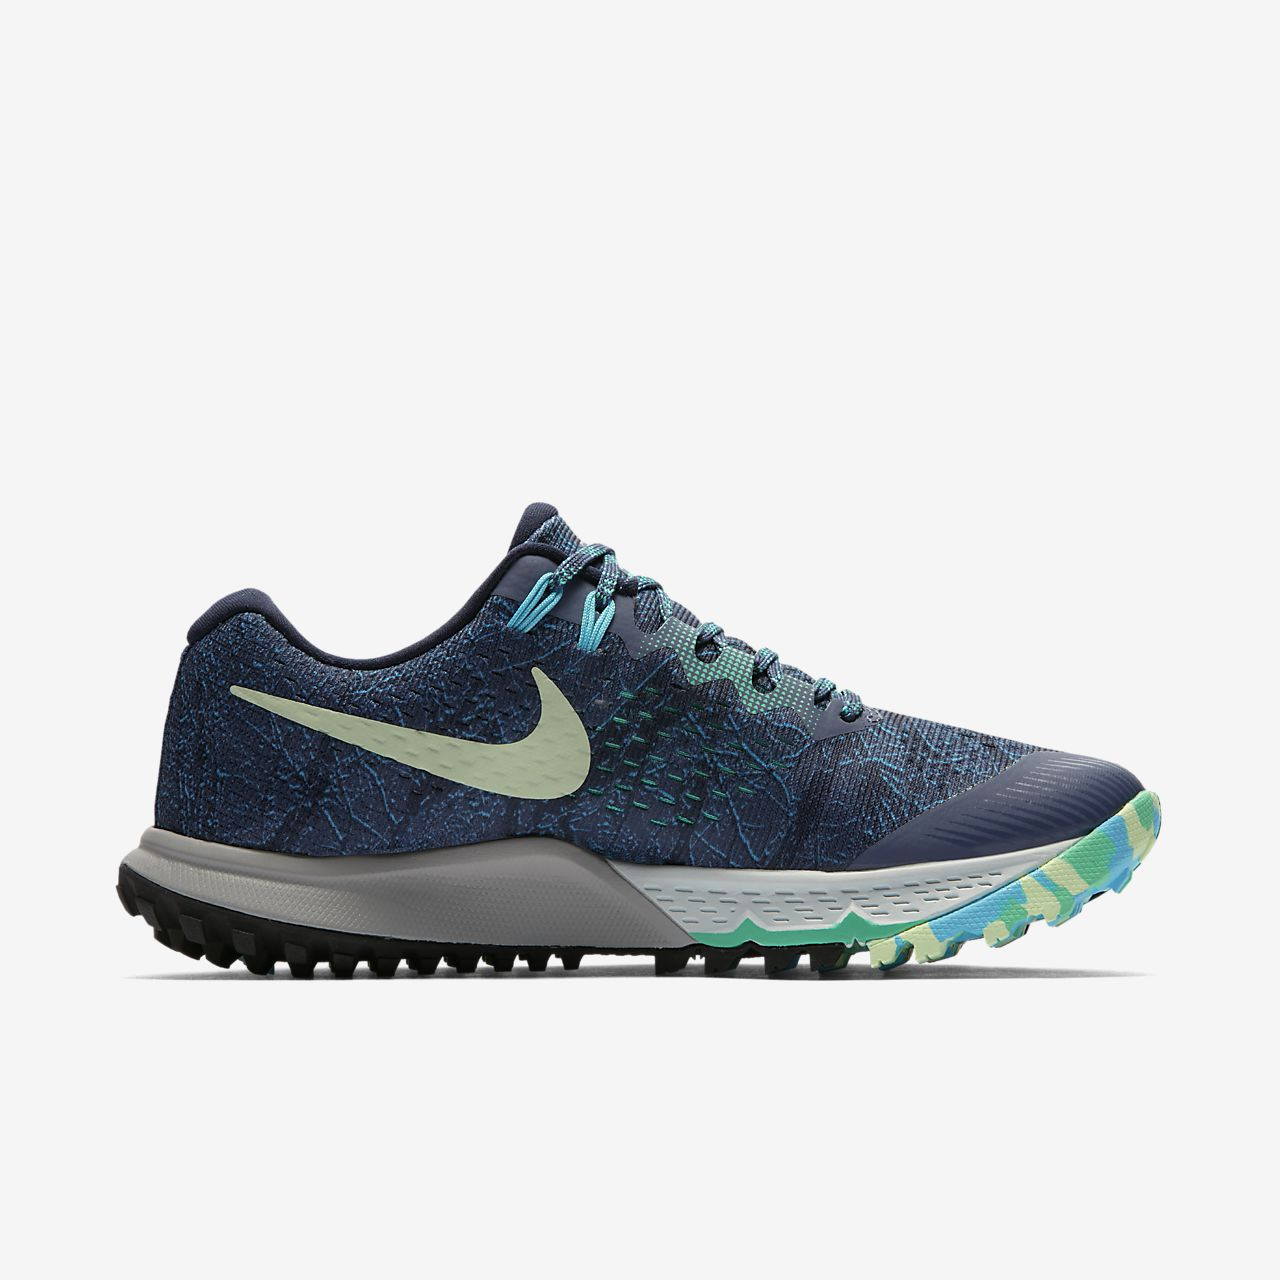 new concept 5dad8 60afc ... Nike Air Zoom Terra Kiger 4 Women s Running Shoe